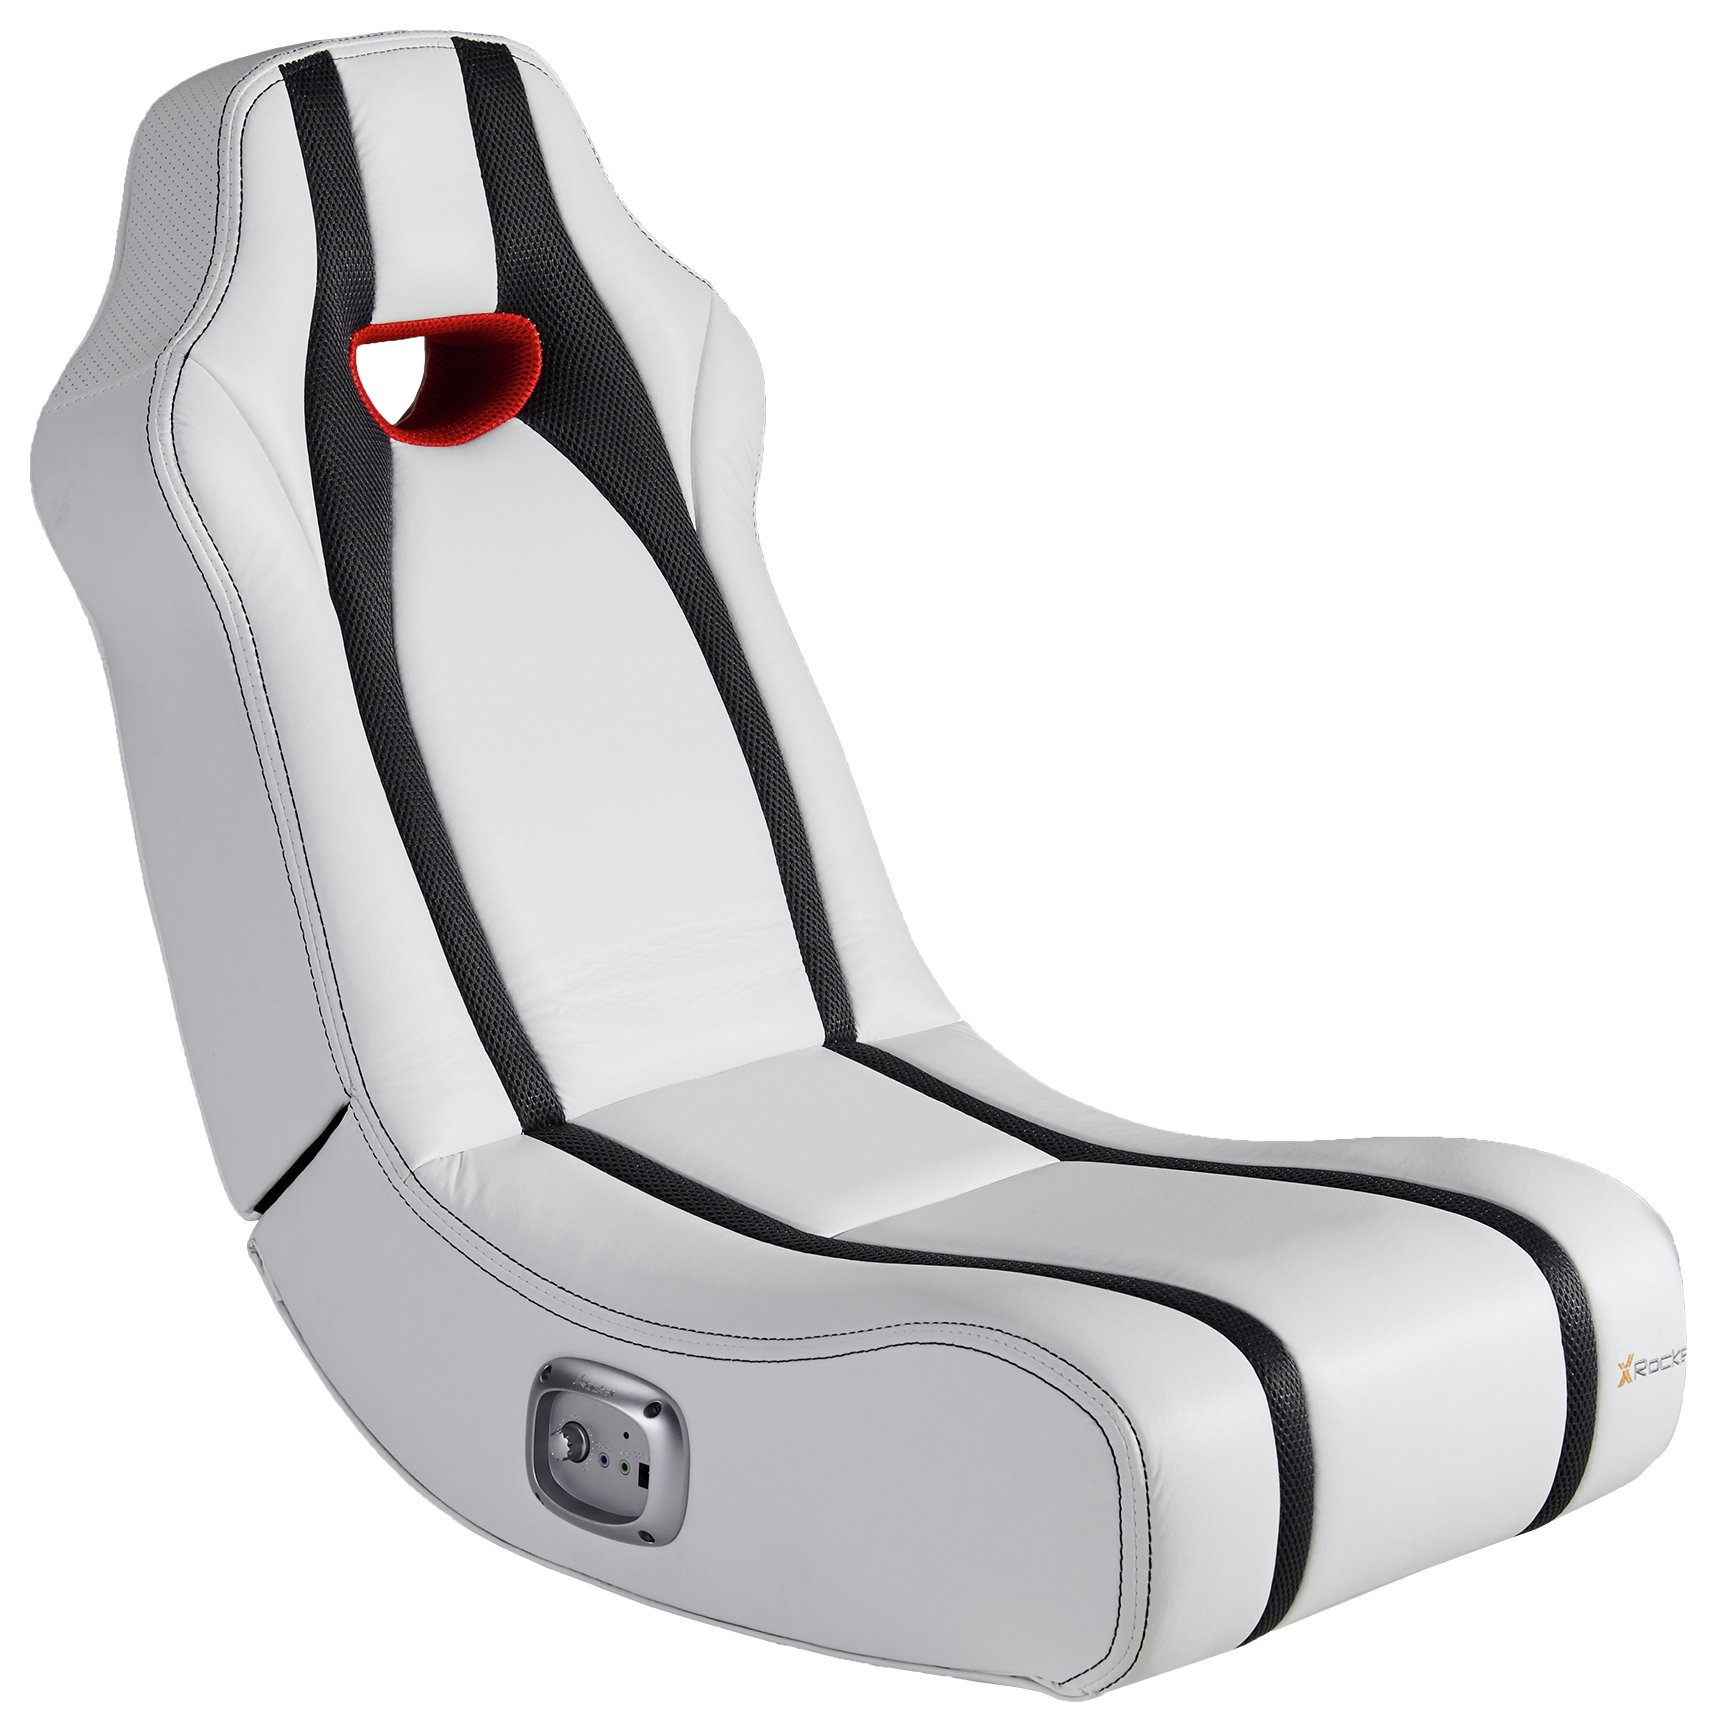 X-Rocker Spectre White Gaming Chair - PS4 & Xbox One.